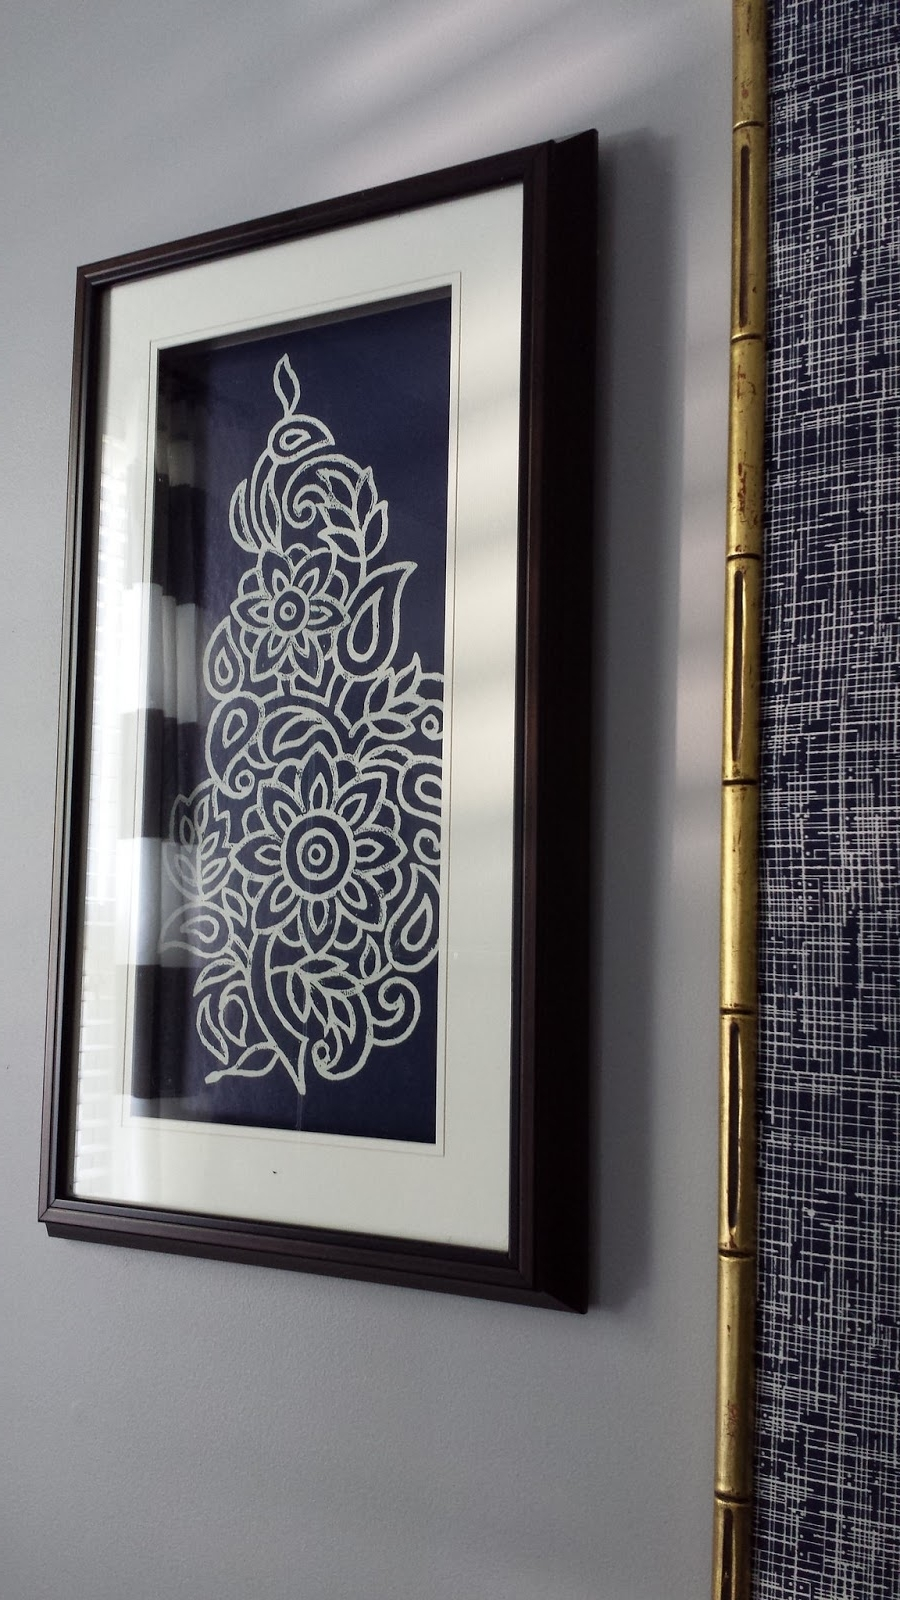 Current Diy Framed Fabric Wall Art With Focal Point Styling: Diy Indigo Wall Art With Framed Fabric (View 1 of 15)